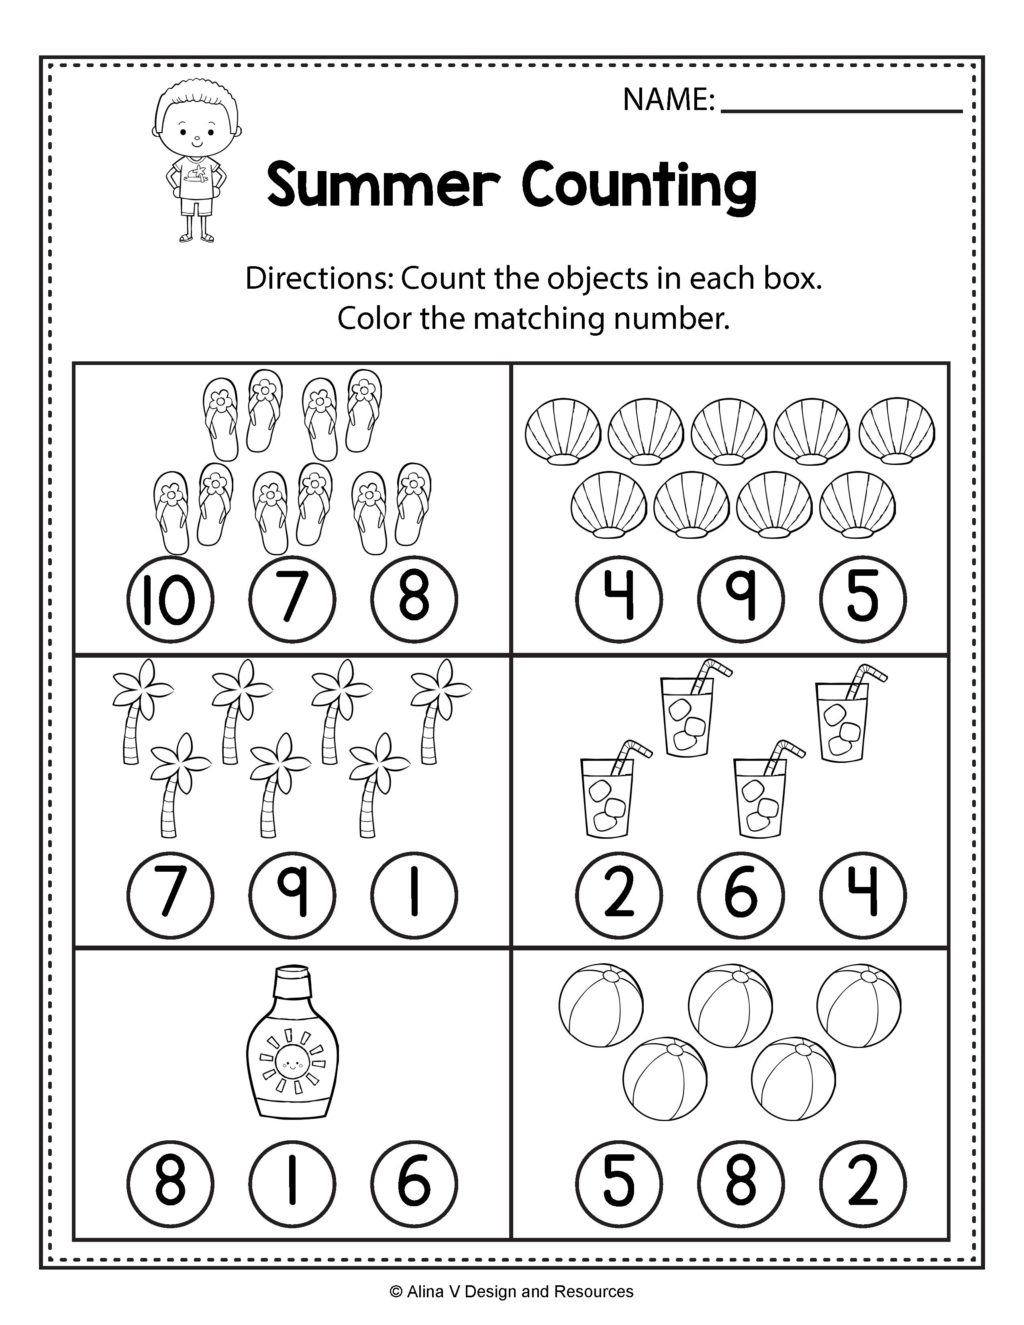 Worksheet ~ Countings For Preschool Summer Math And